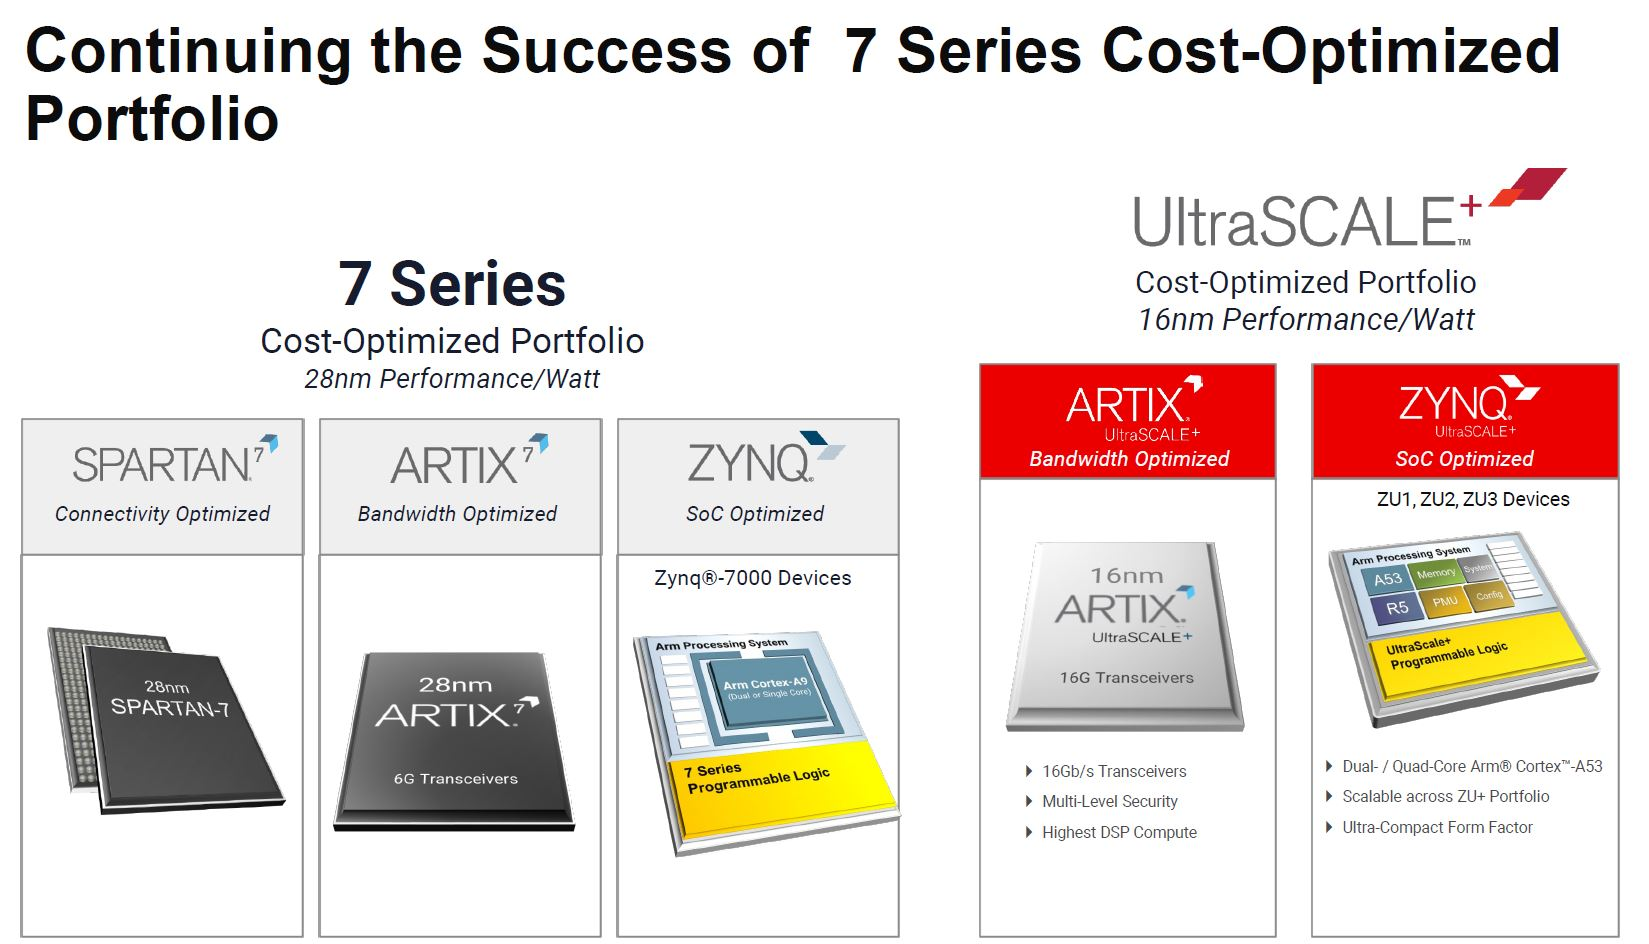 Xilinx Zynq And Artix UltraScale+ Cost Optimized Portfolio Update To The 7 Series